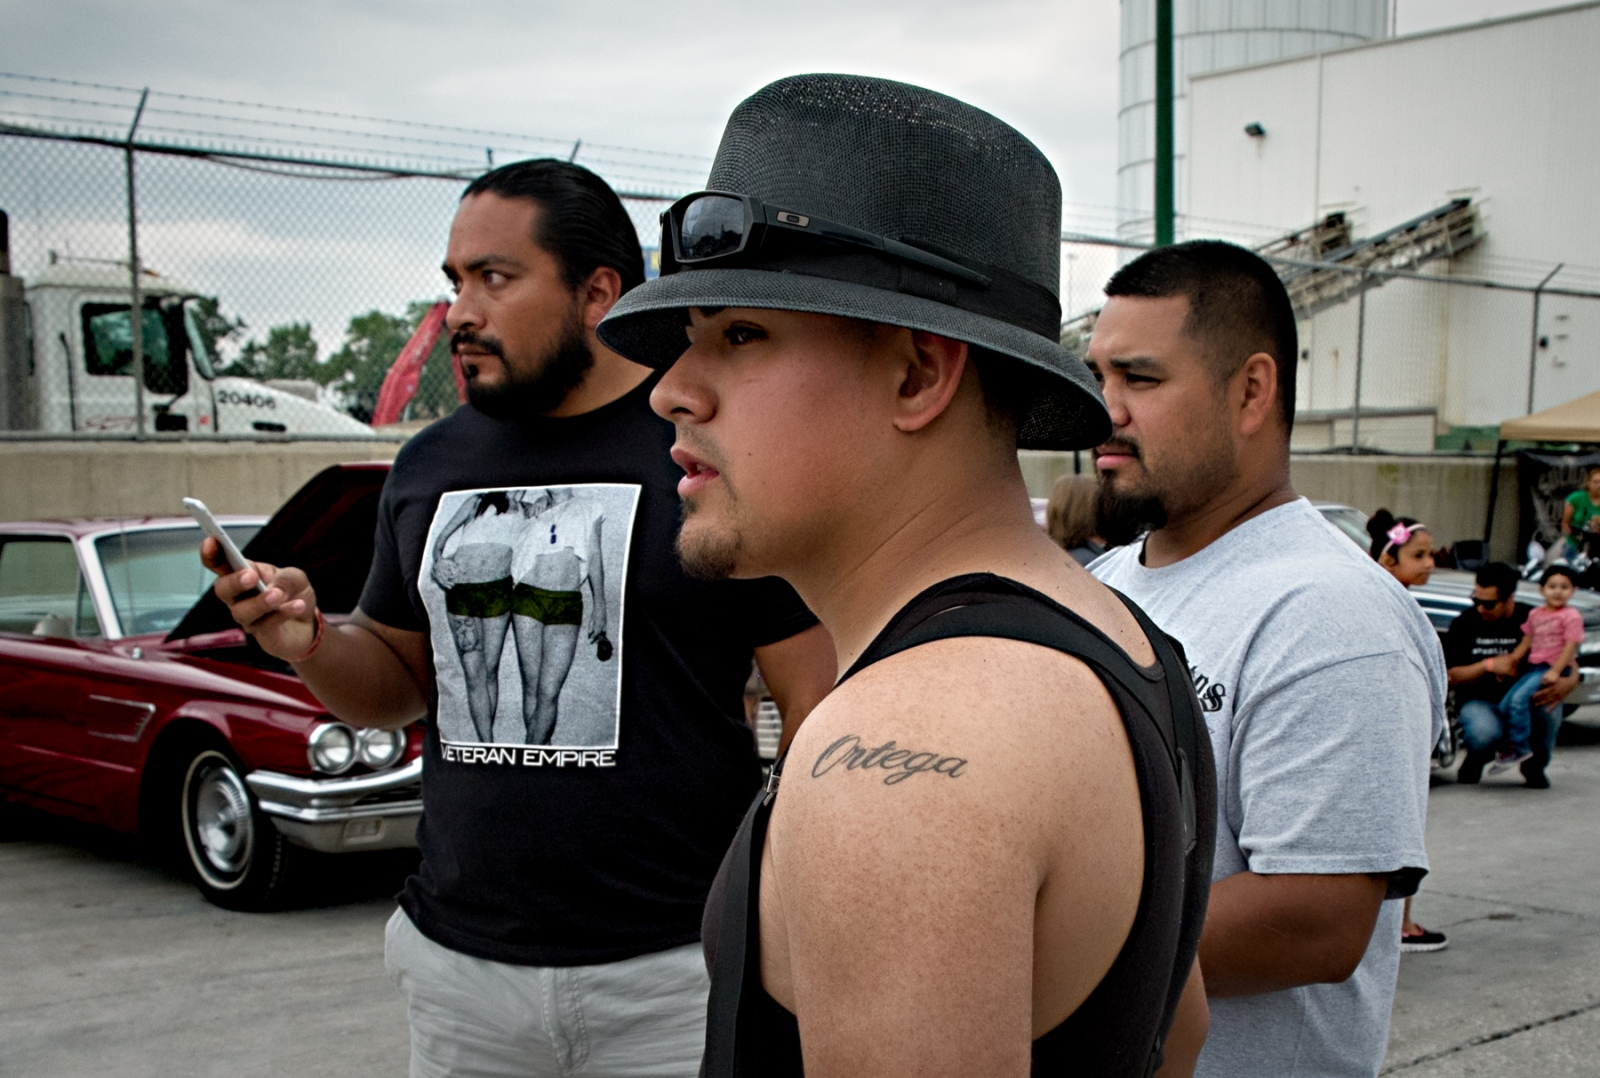 Art and Documentary Photography - Loading LowRider2015-43-Edit.jpg